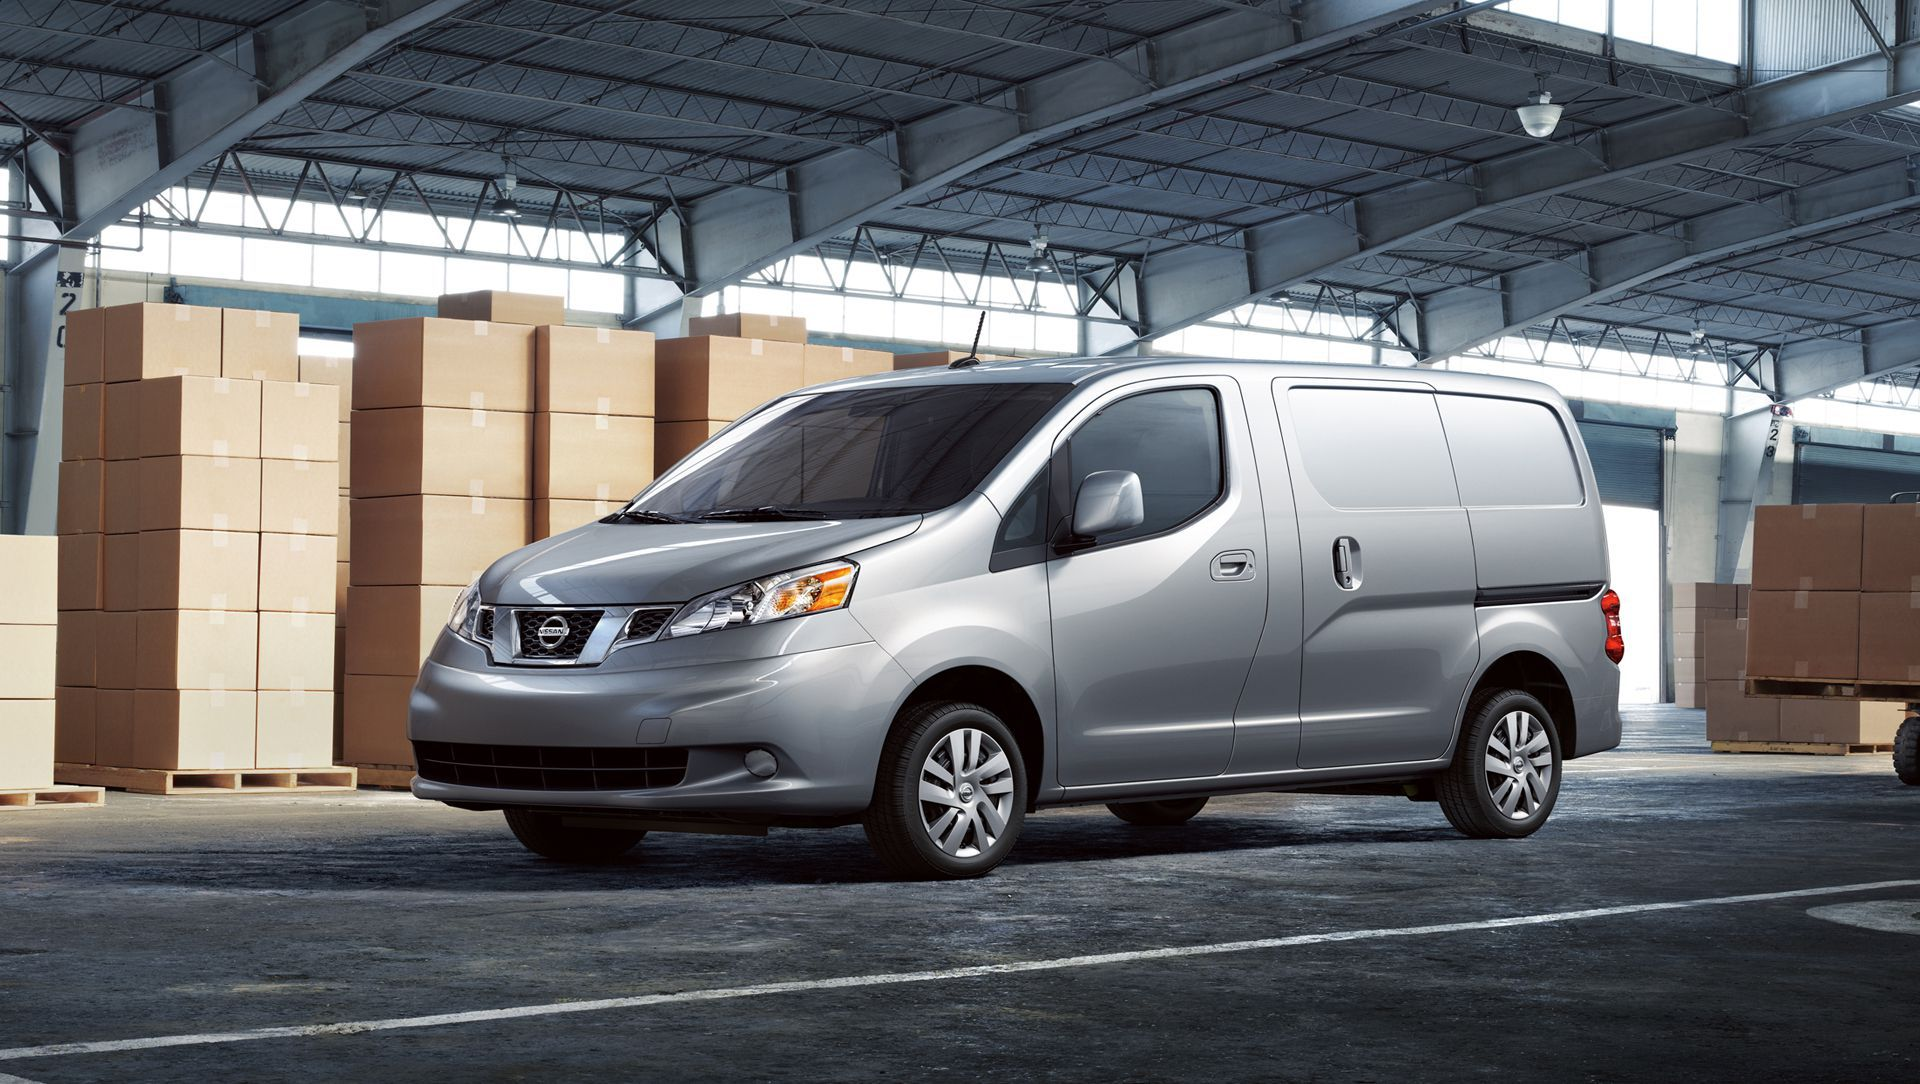 Nissan nv200 compact cargo van offers efficient packaging with a large cargo space within a small the